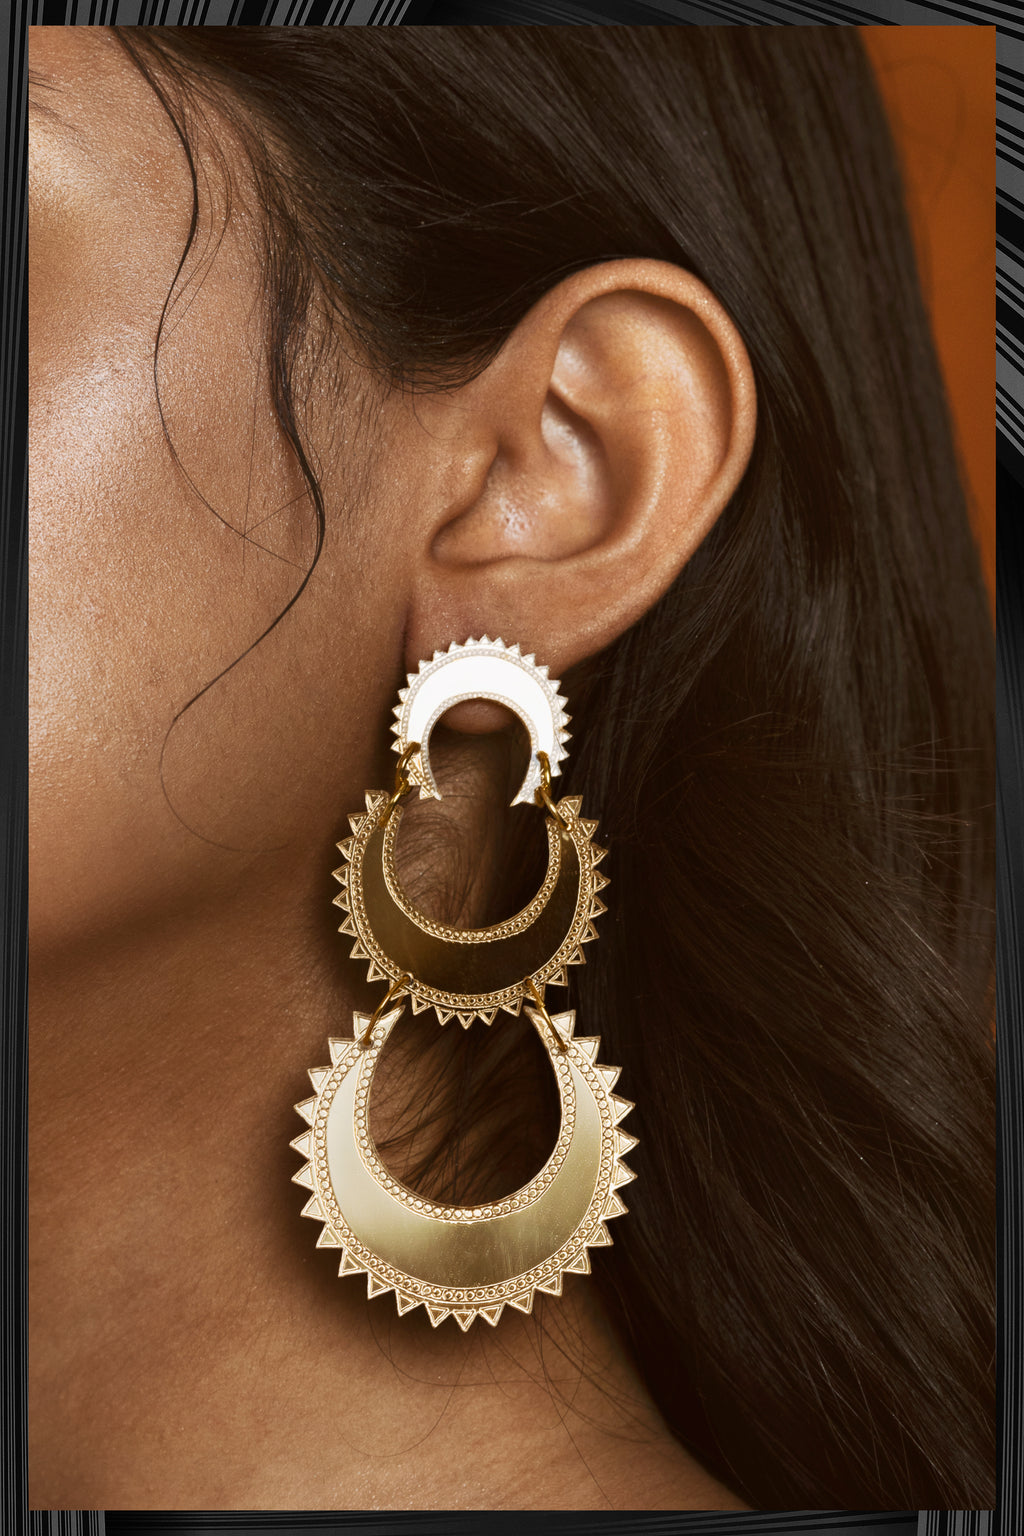 Layered Chand Earrings | Free Delivery - 2-3 Week Shipping